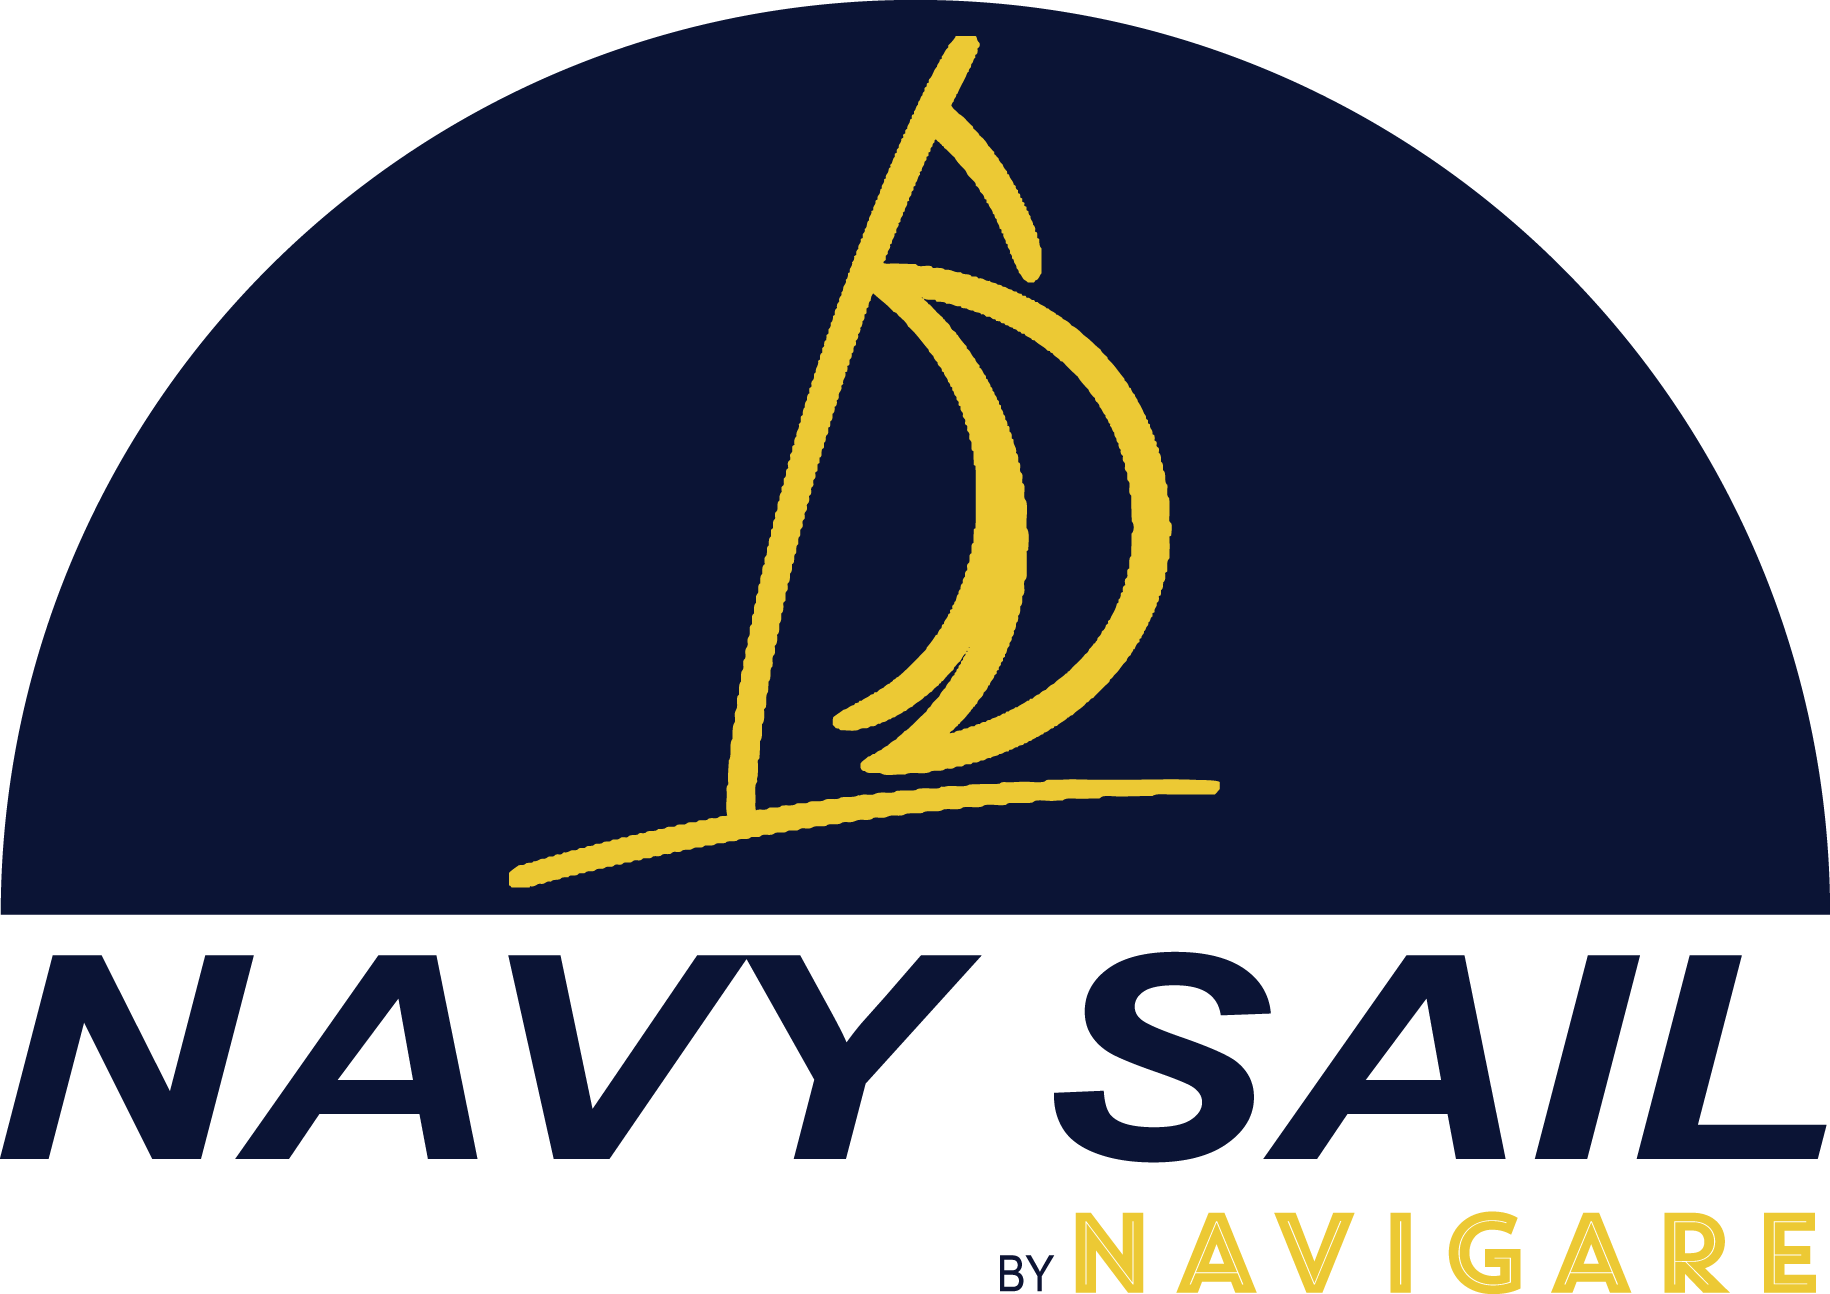 Navy Sail by Navigare